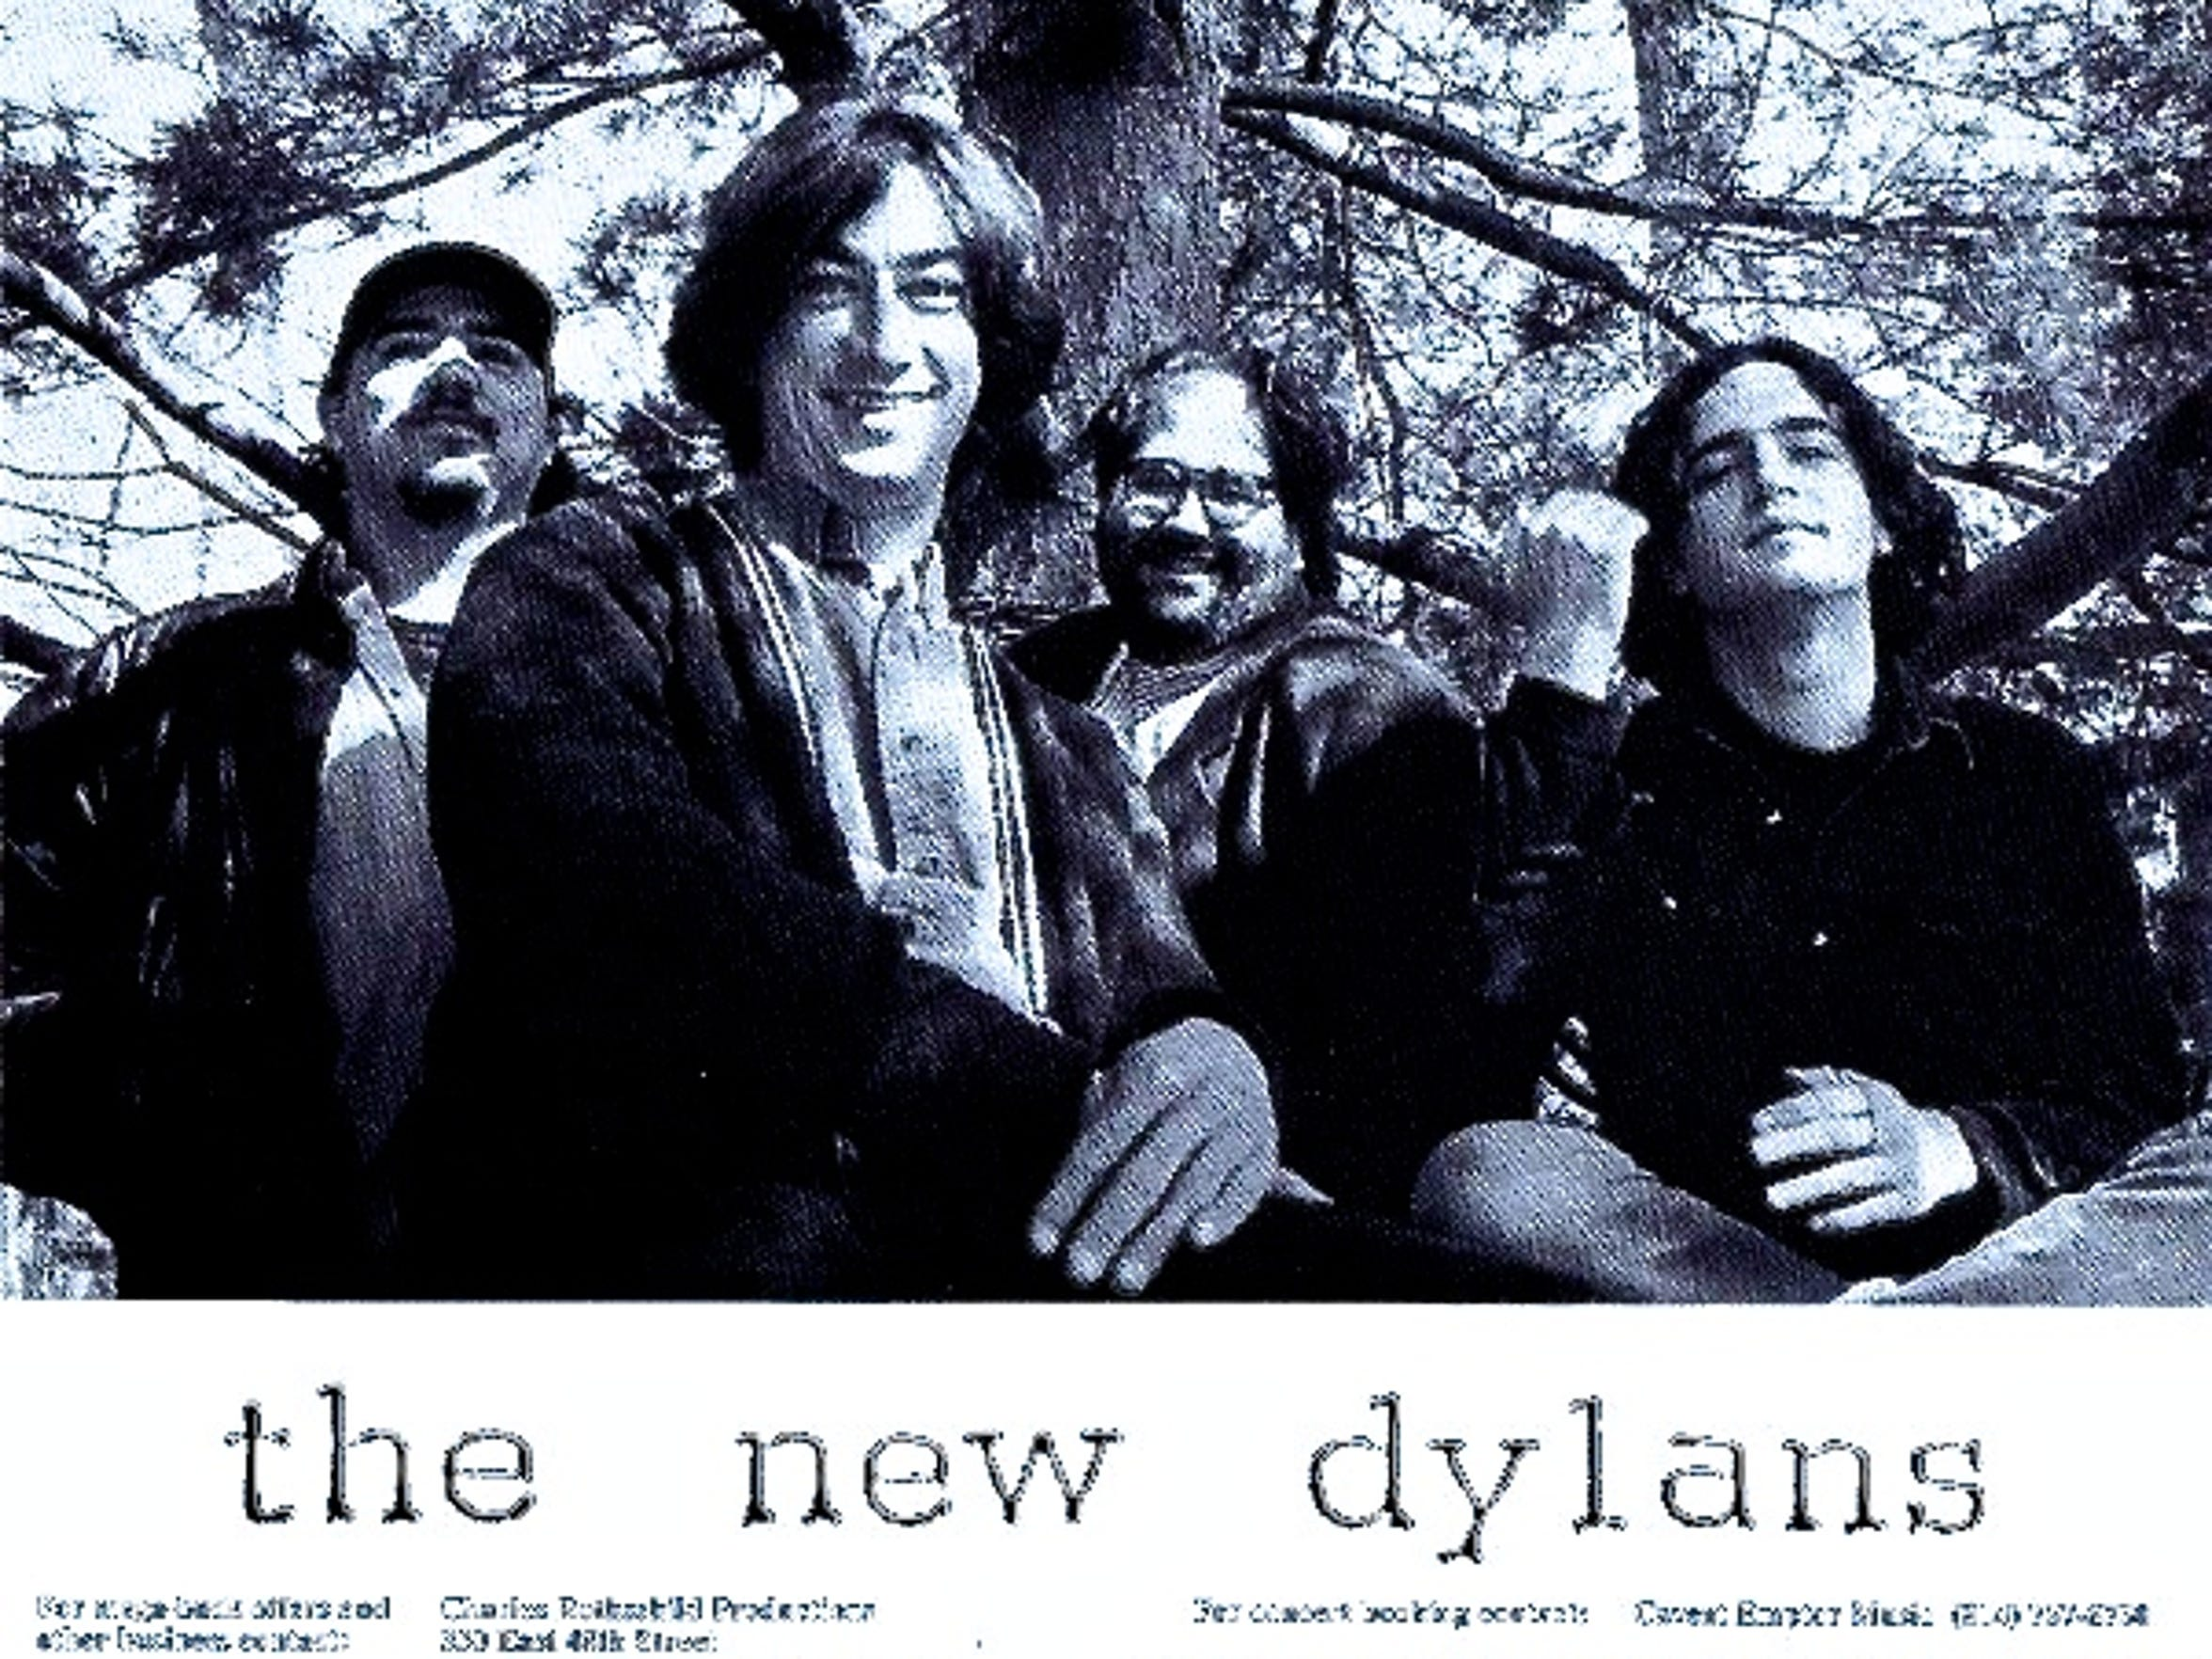 New Dylans, 1996, group photo in Rodchester, New York, from left, Dylan Savage, Reese Campbell, Jim Reilley and Tom Gilbert, on right.